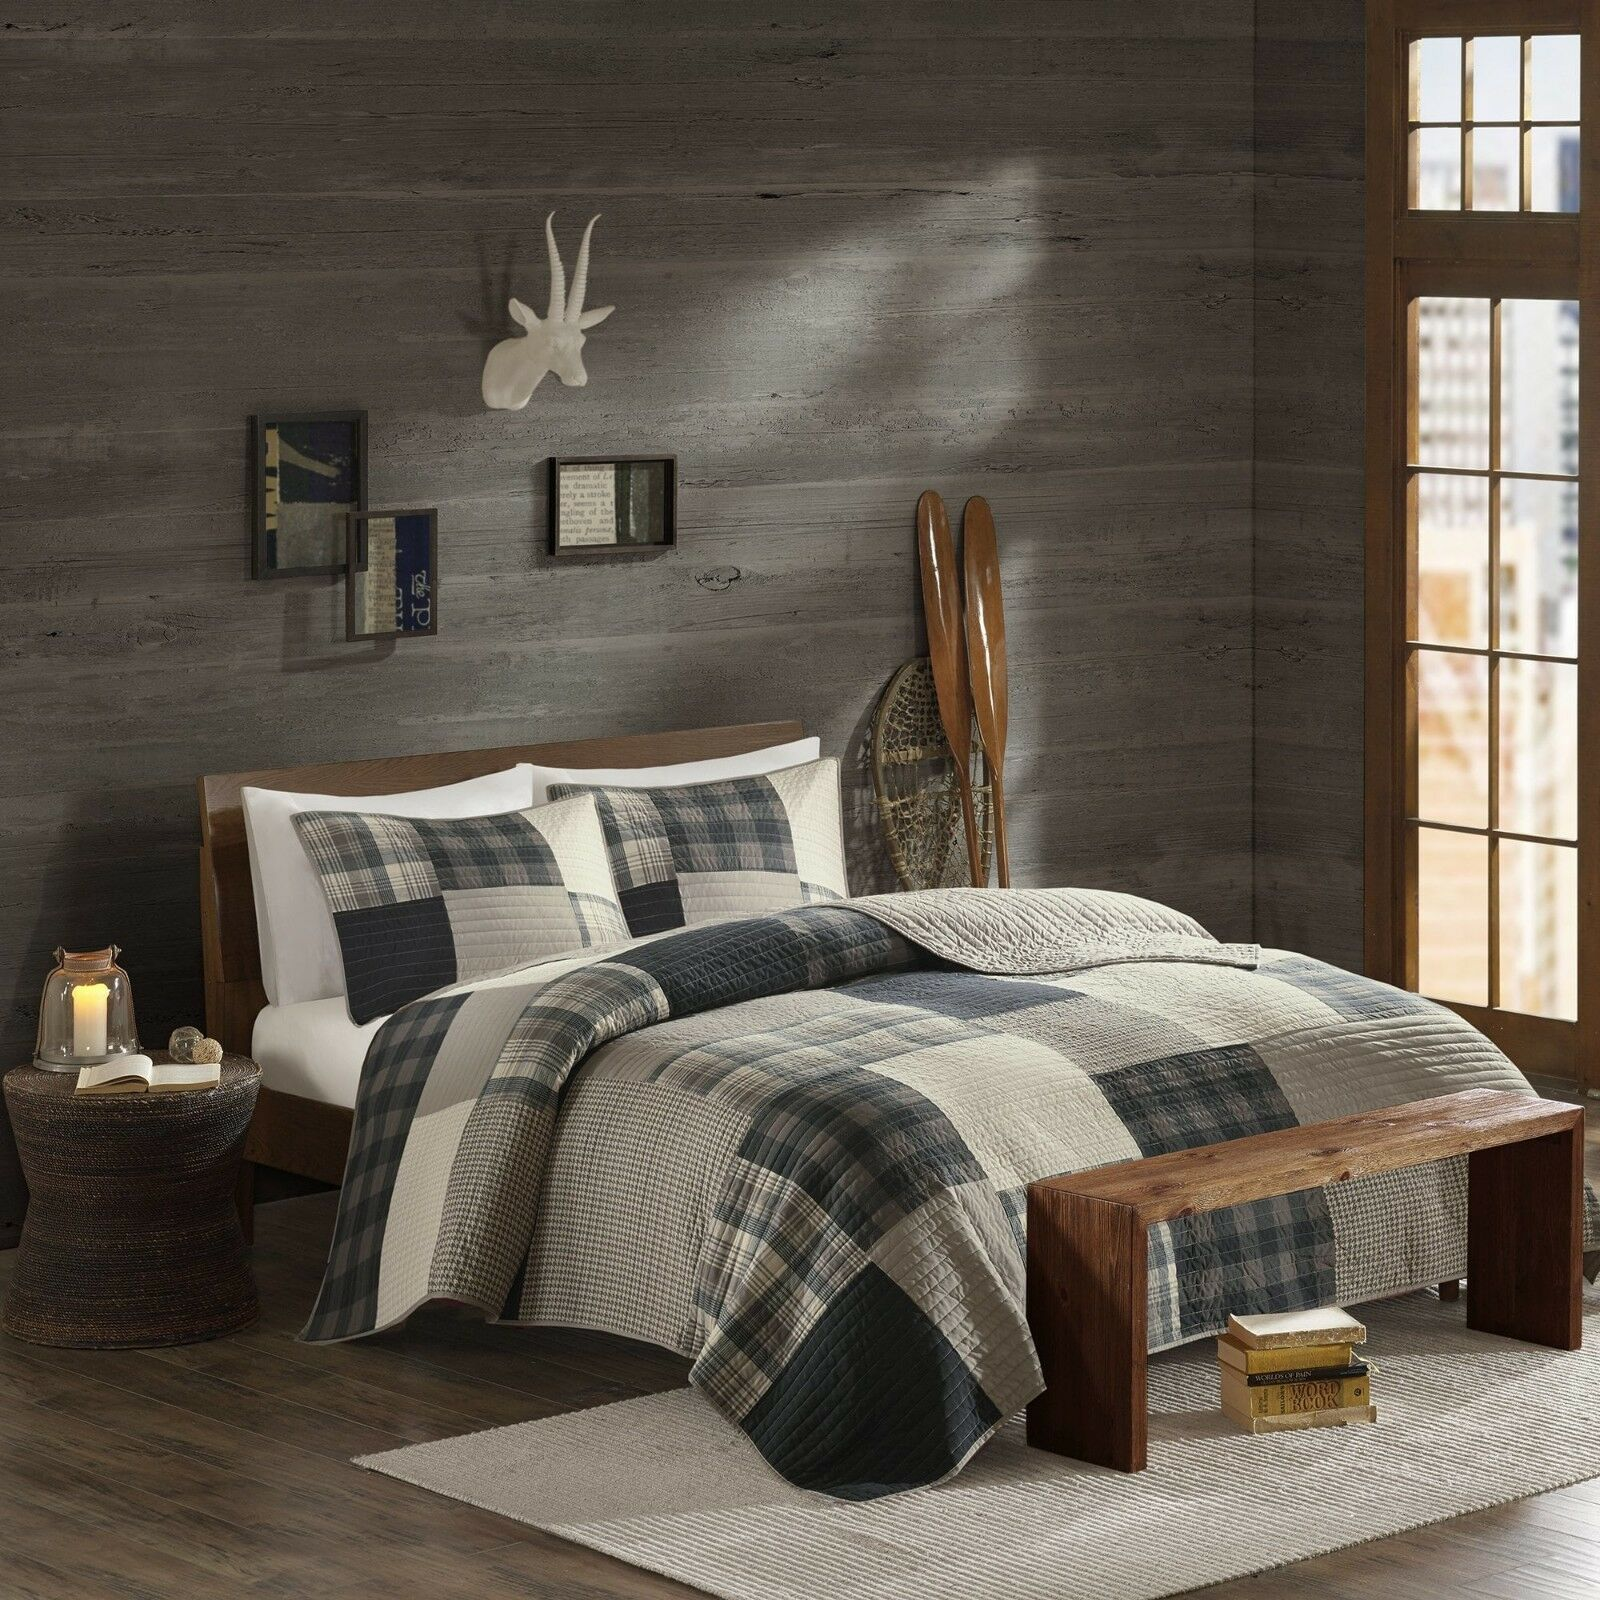 BEAUTIFUL MODERN COZY LODGE HUNTING LOG CABIN GREY WHITE BEIGE PLAID QUILT SET